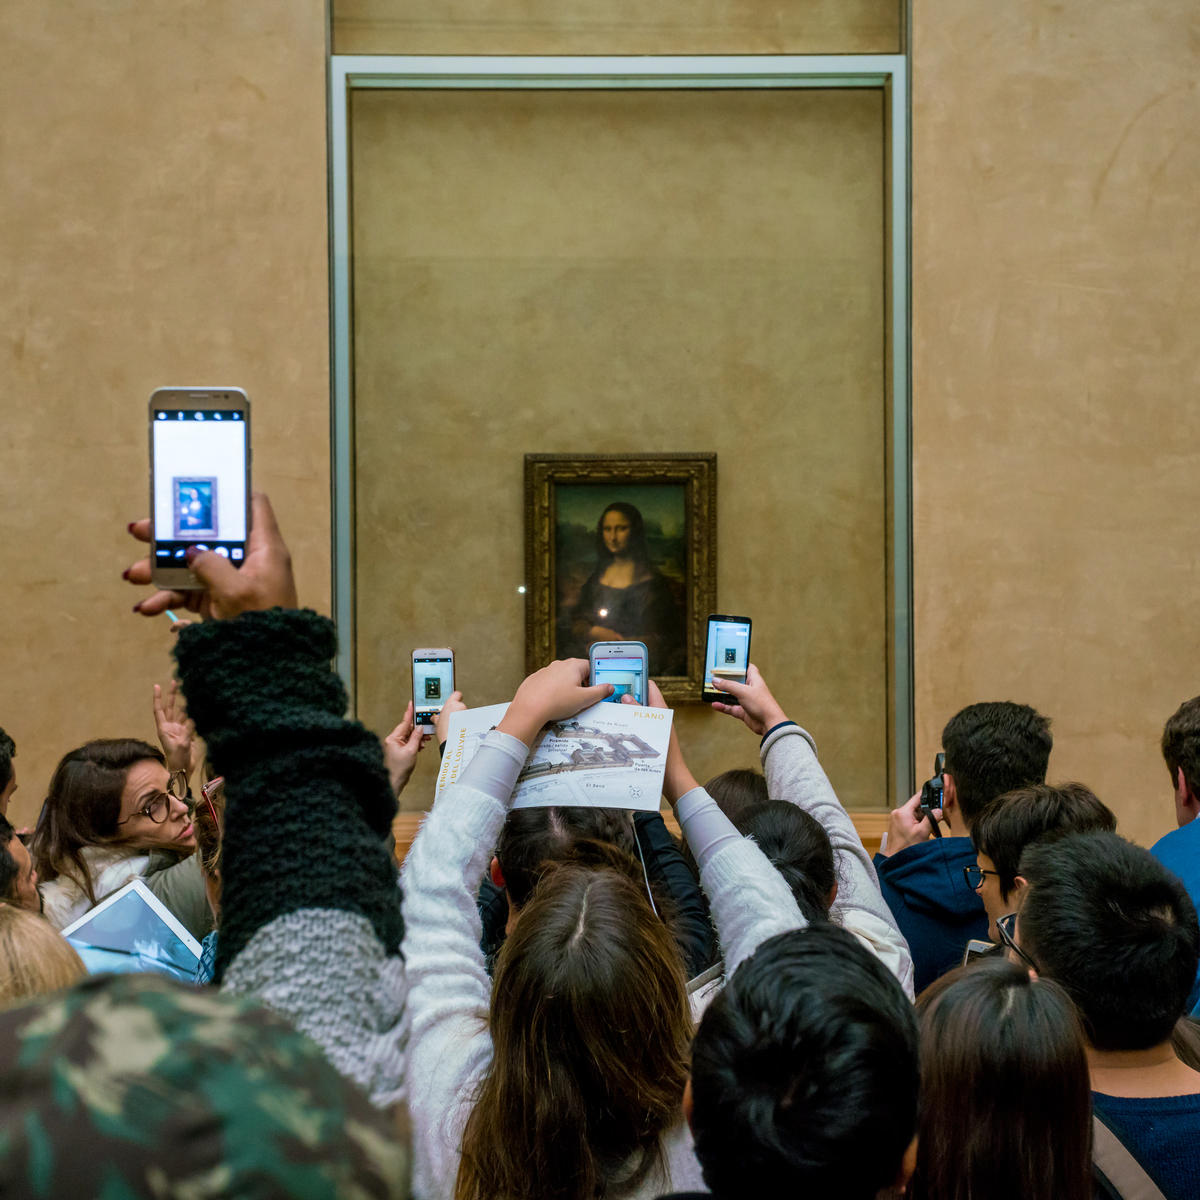 Long queues to see the Mona Lisa have led to frayed tempers / Shutterstock